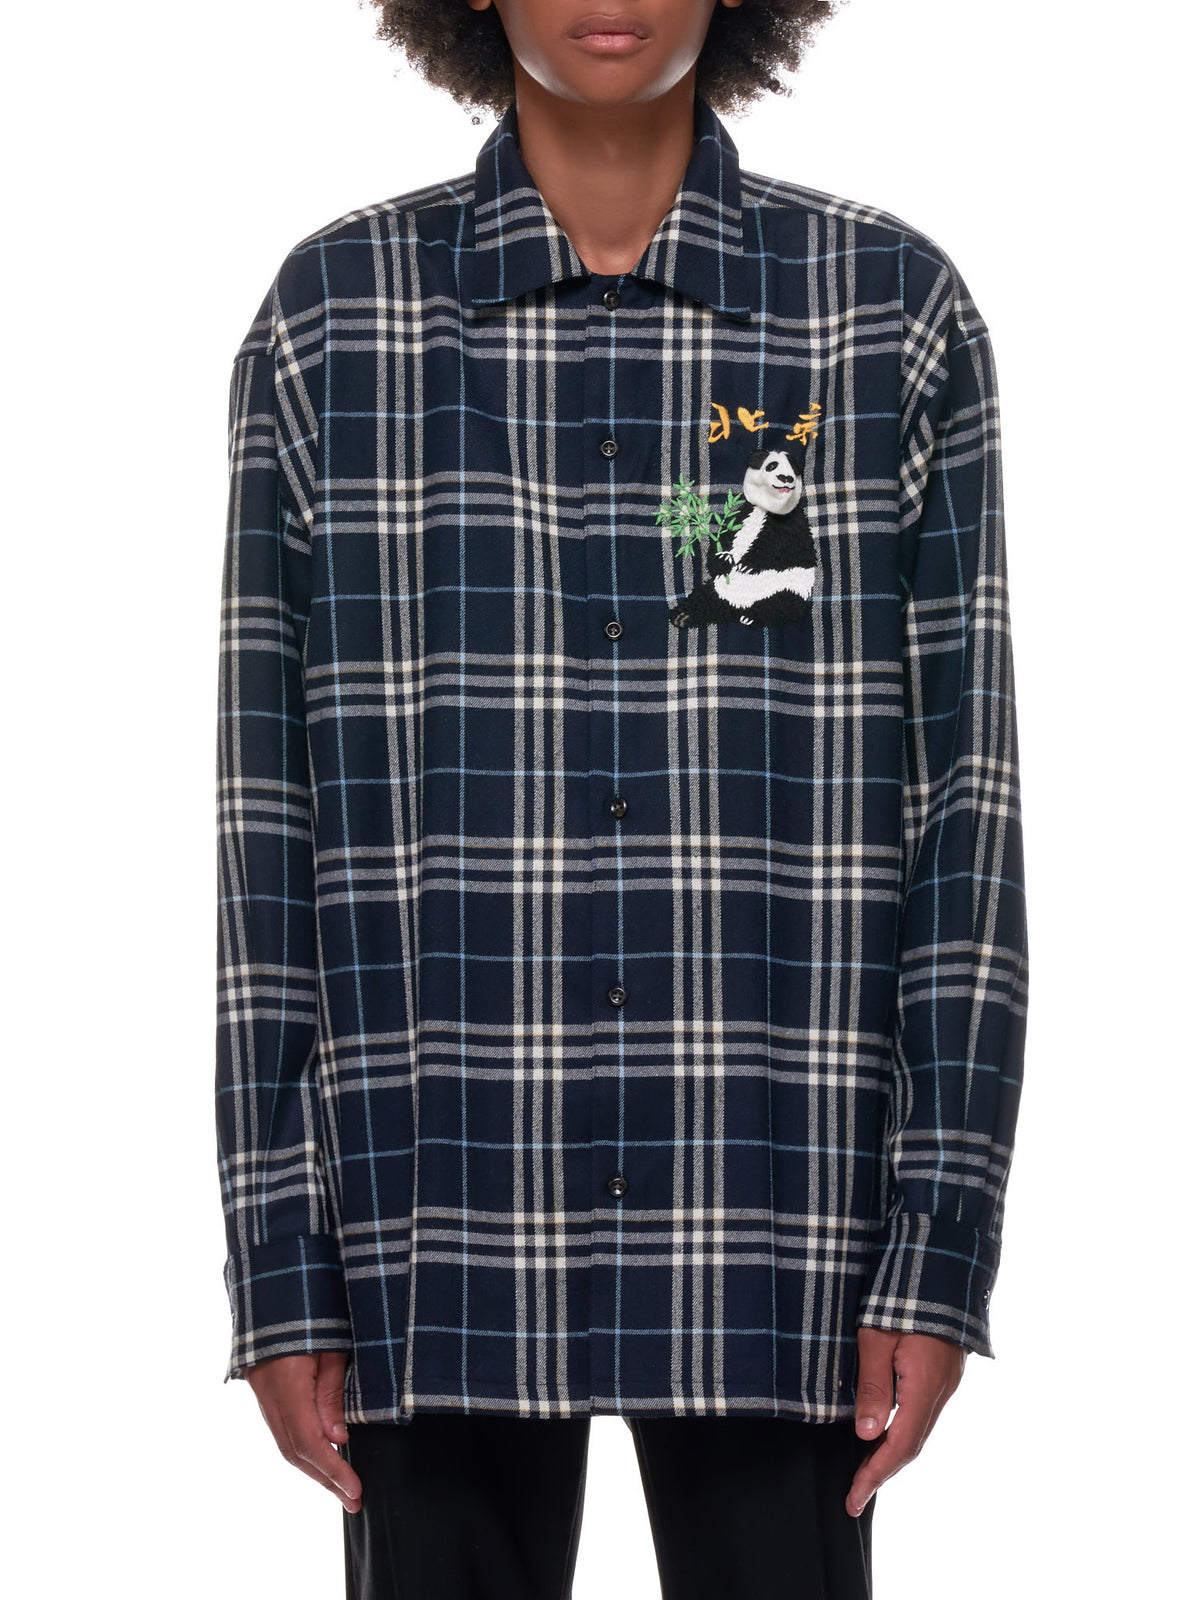 Puppet Animal Embroidery Check Shirt (25SH85-NAVY)